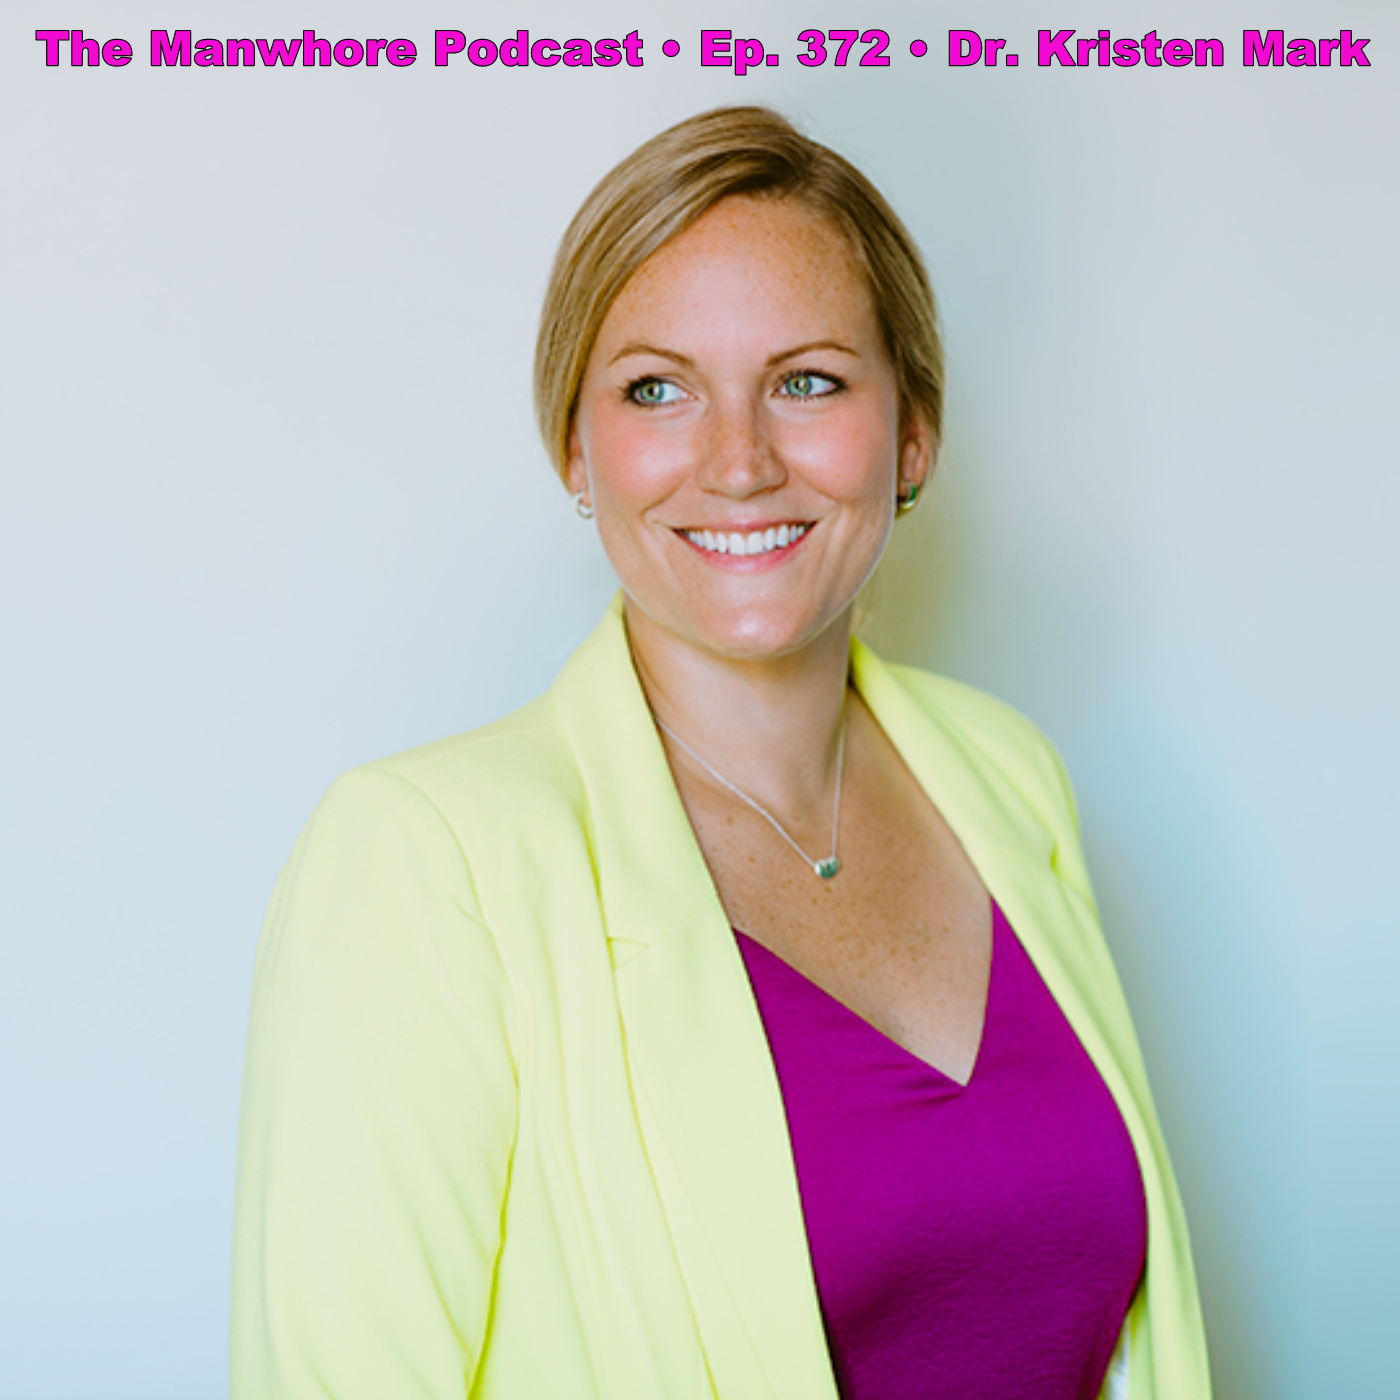 The Manwhore Podcast: A Sex-Positive Quest - Ep. 372: Relationships After COVID with Dr. Kristen Mark